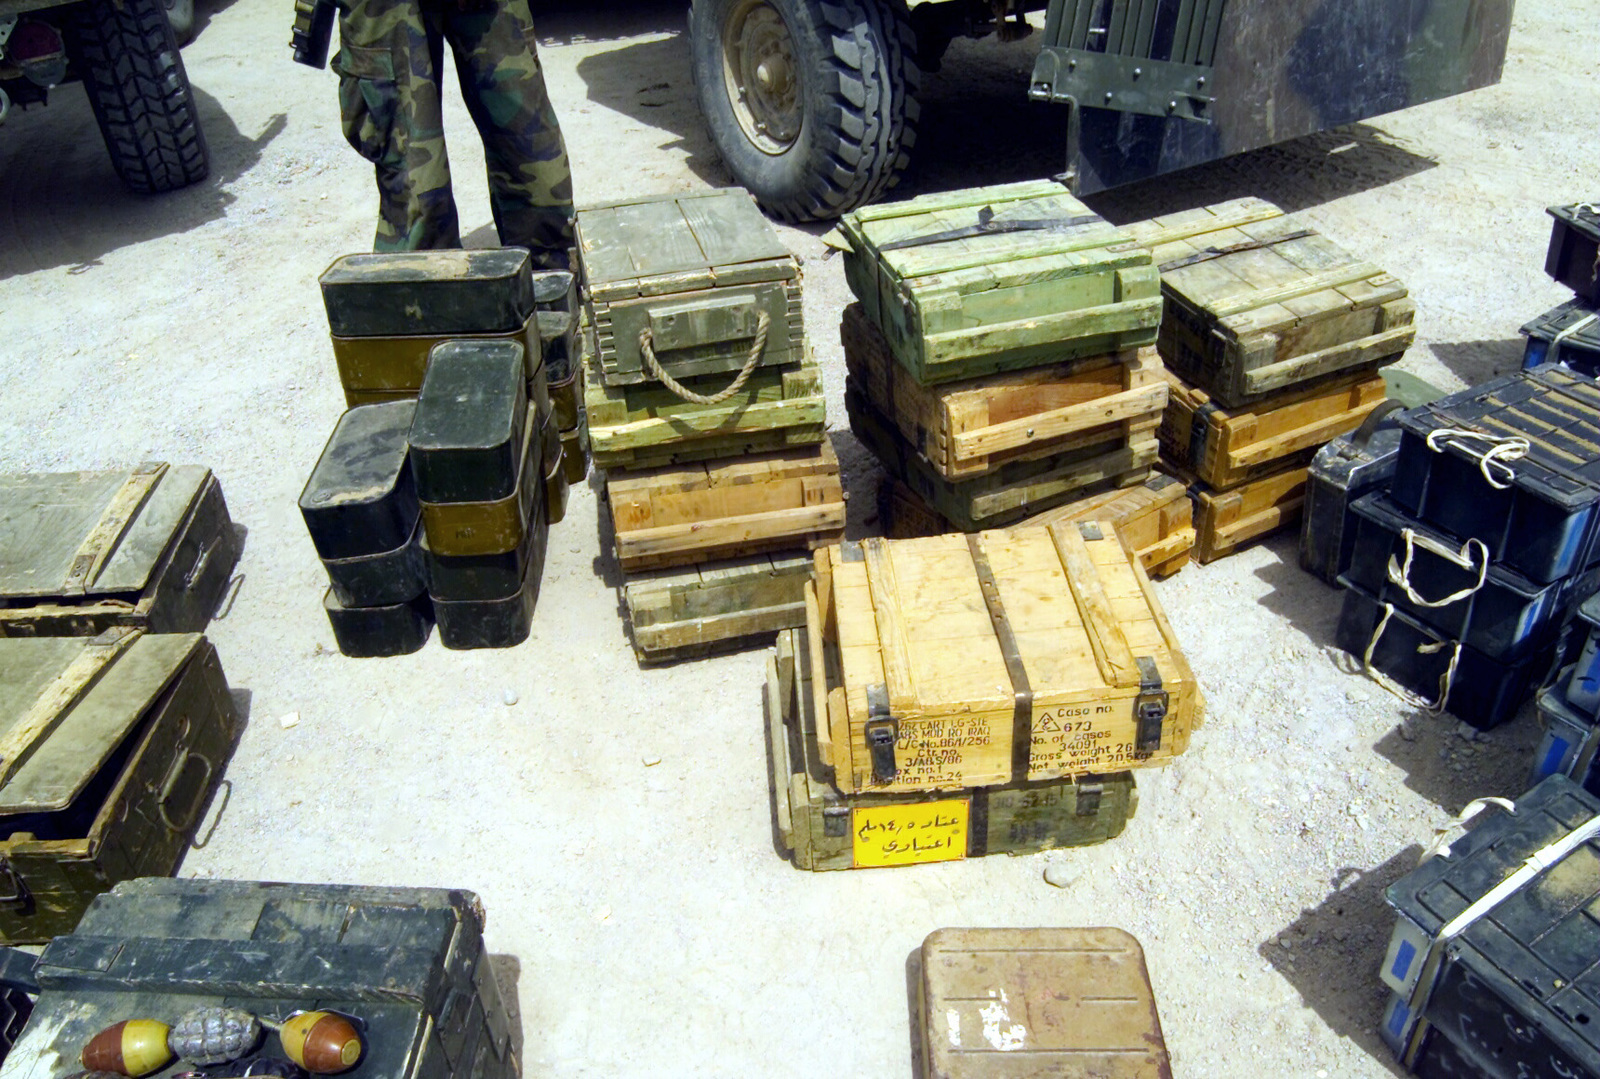 A weapons cache of Grenades, mortar rounds and various